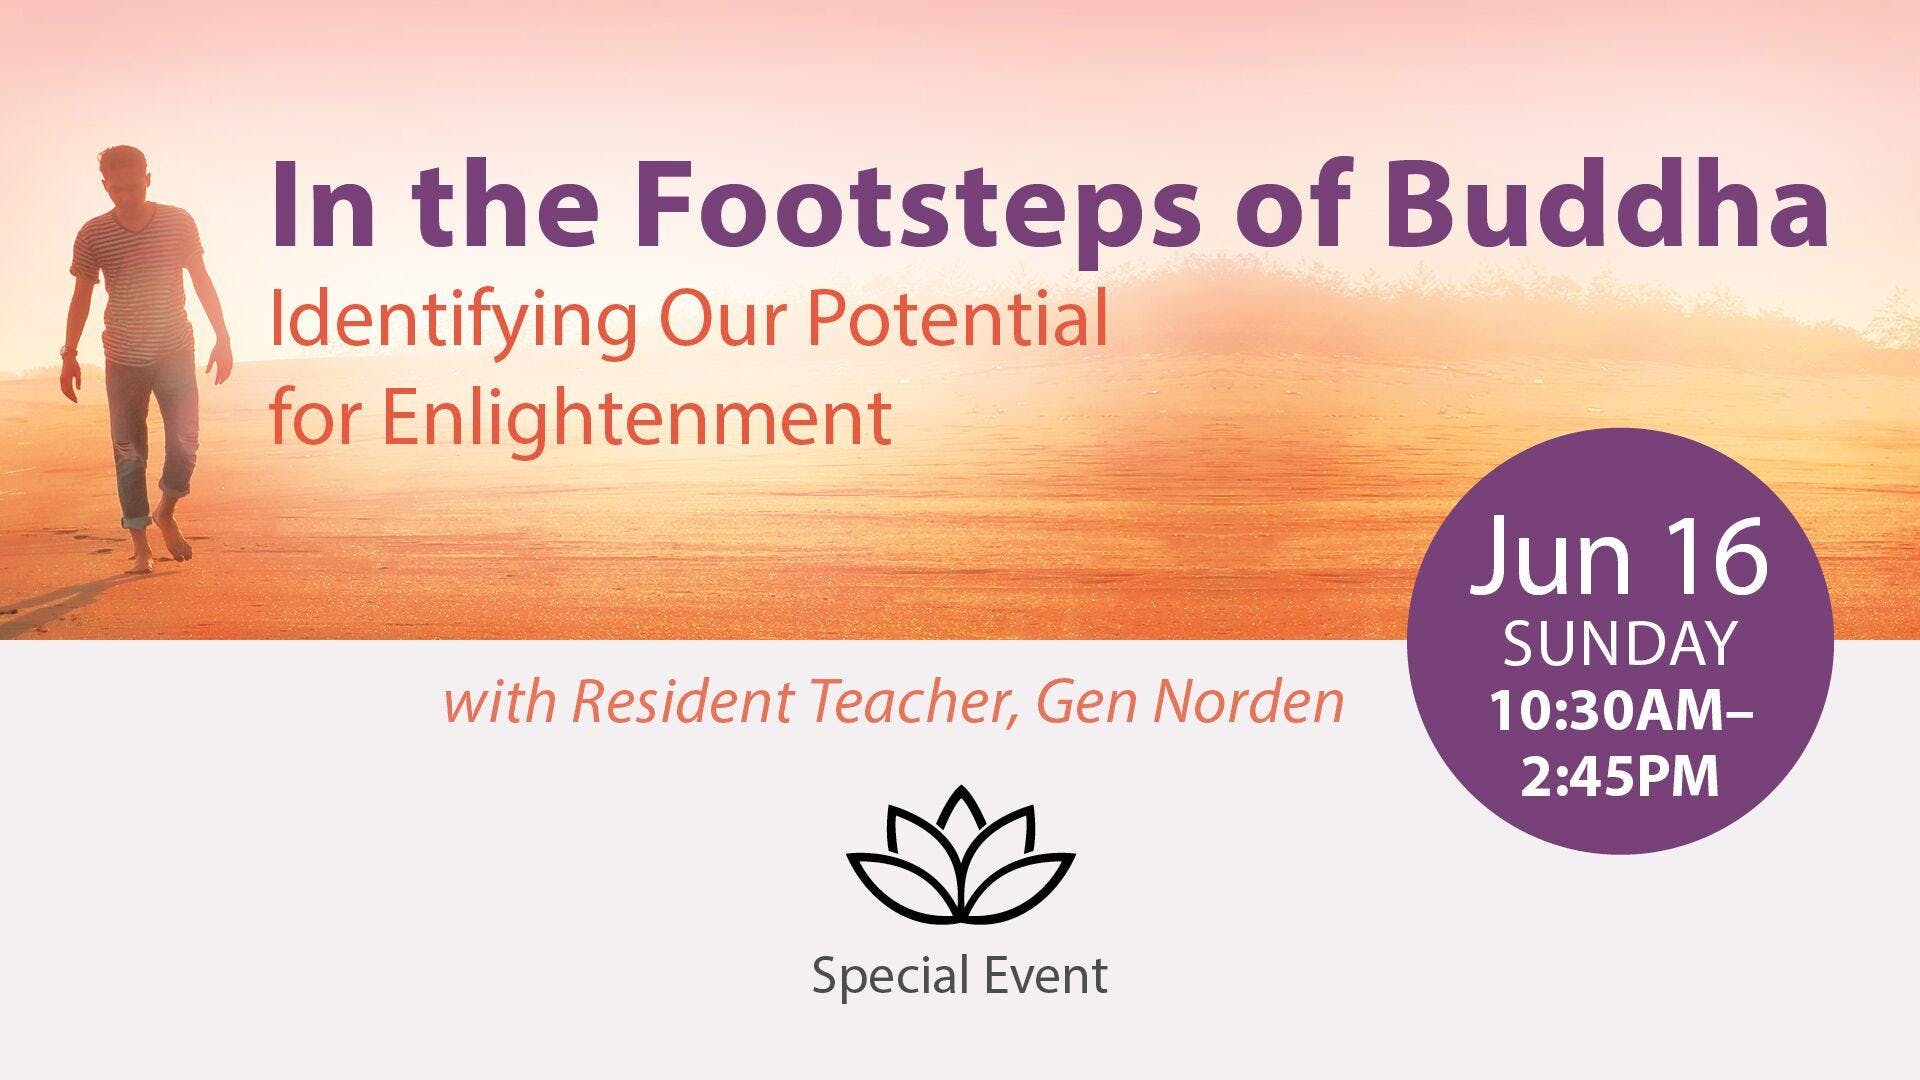 Buddhist Meditation Event for Everyone: In the Footsteps of Buddha: Identifying Our Potential for Enlightenment